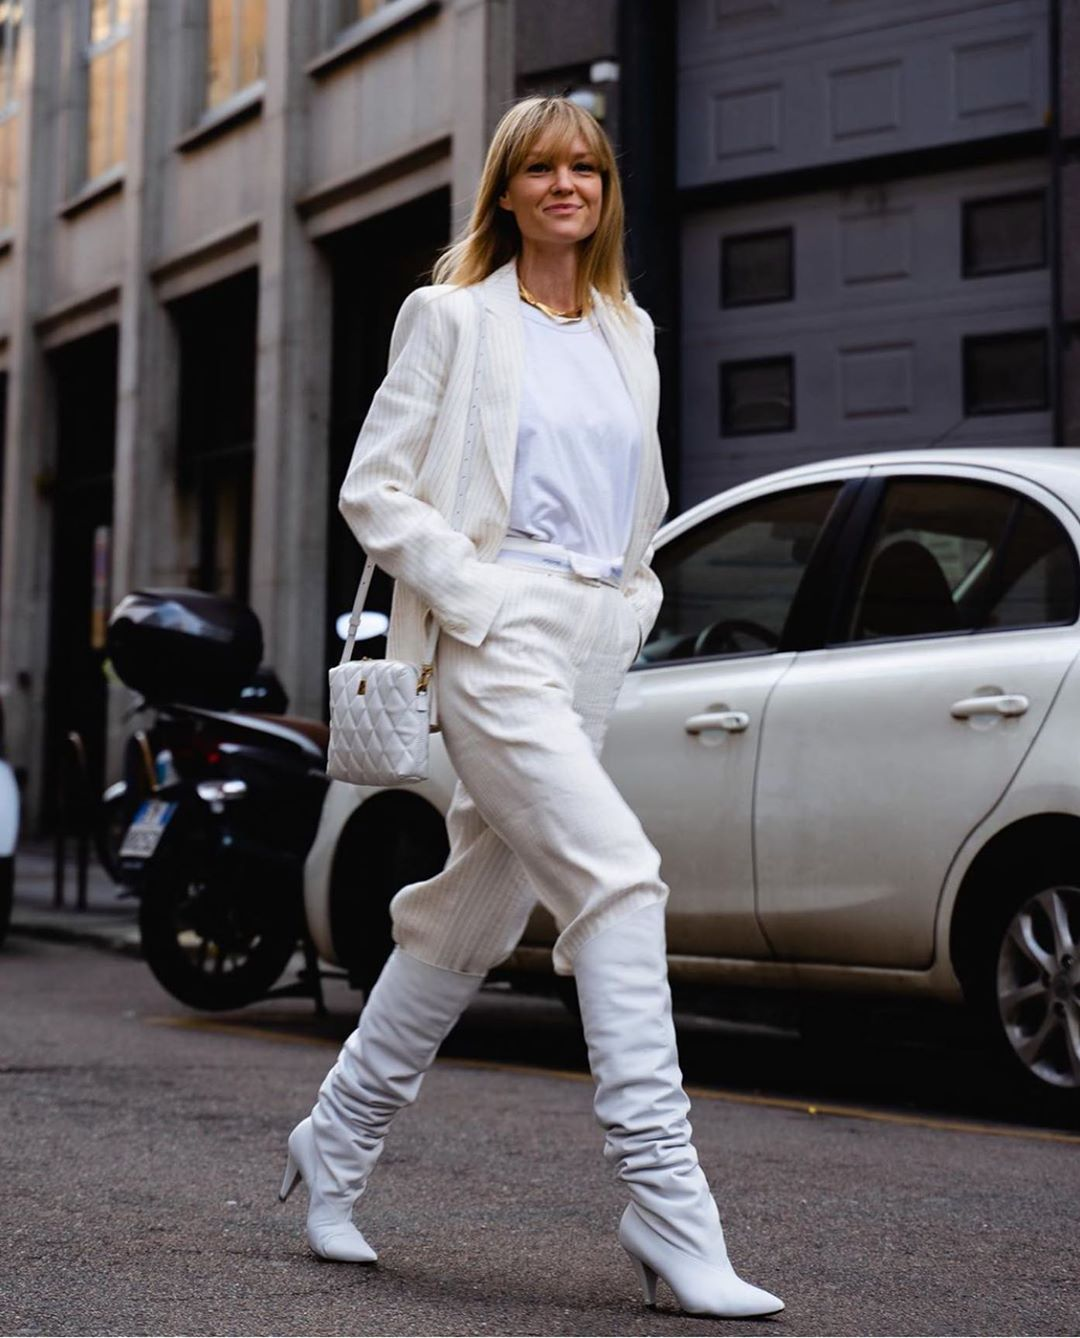 jeanette-madsen-max-mara-suit-street-style